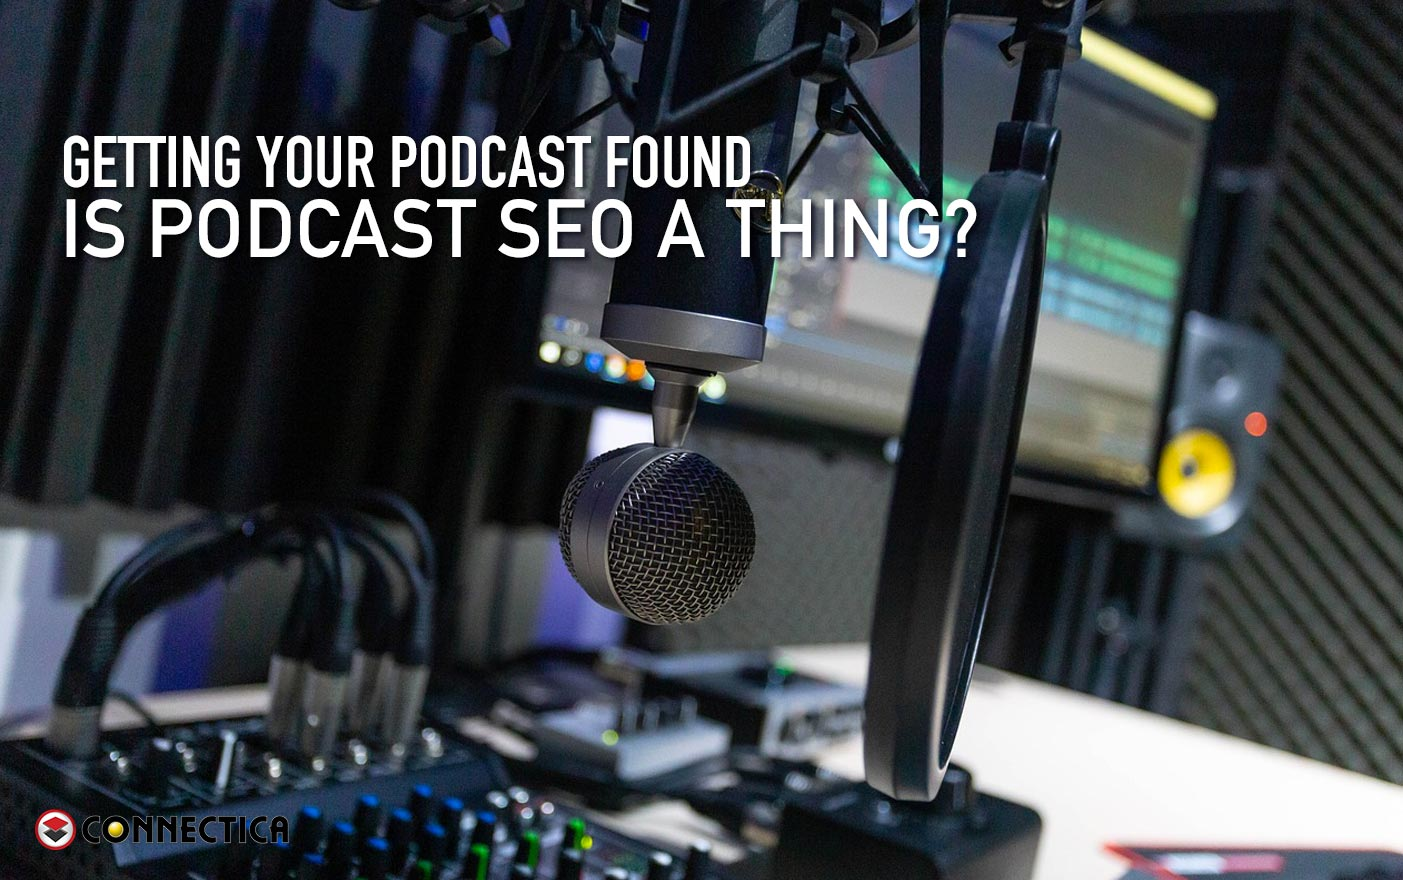 Getting Your Podcast Found - Is Podcast SEO A Thing?